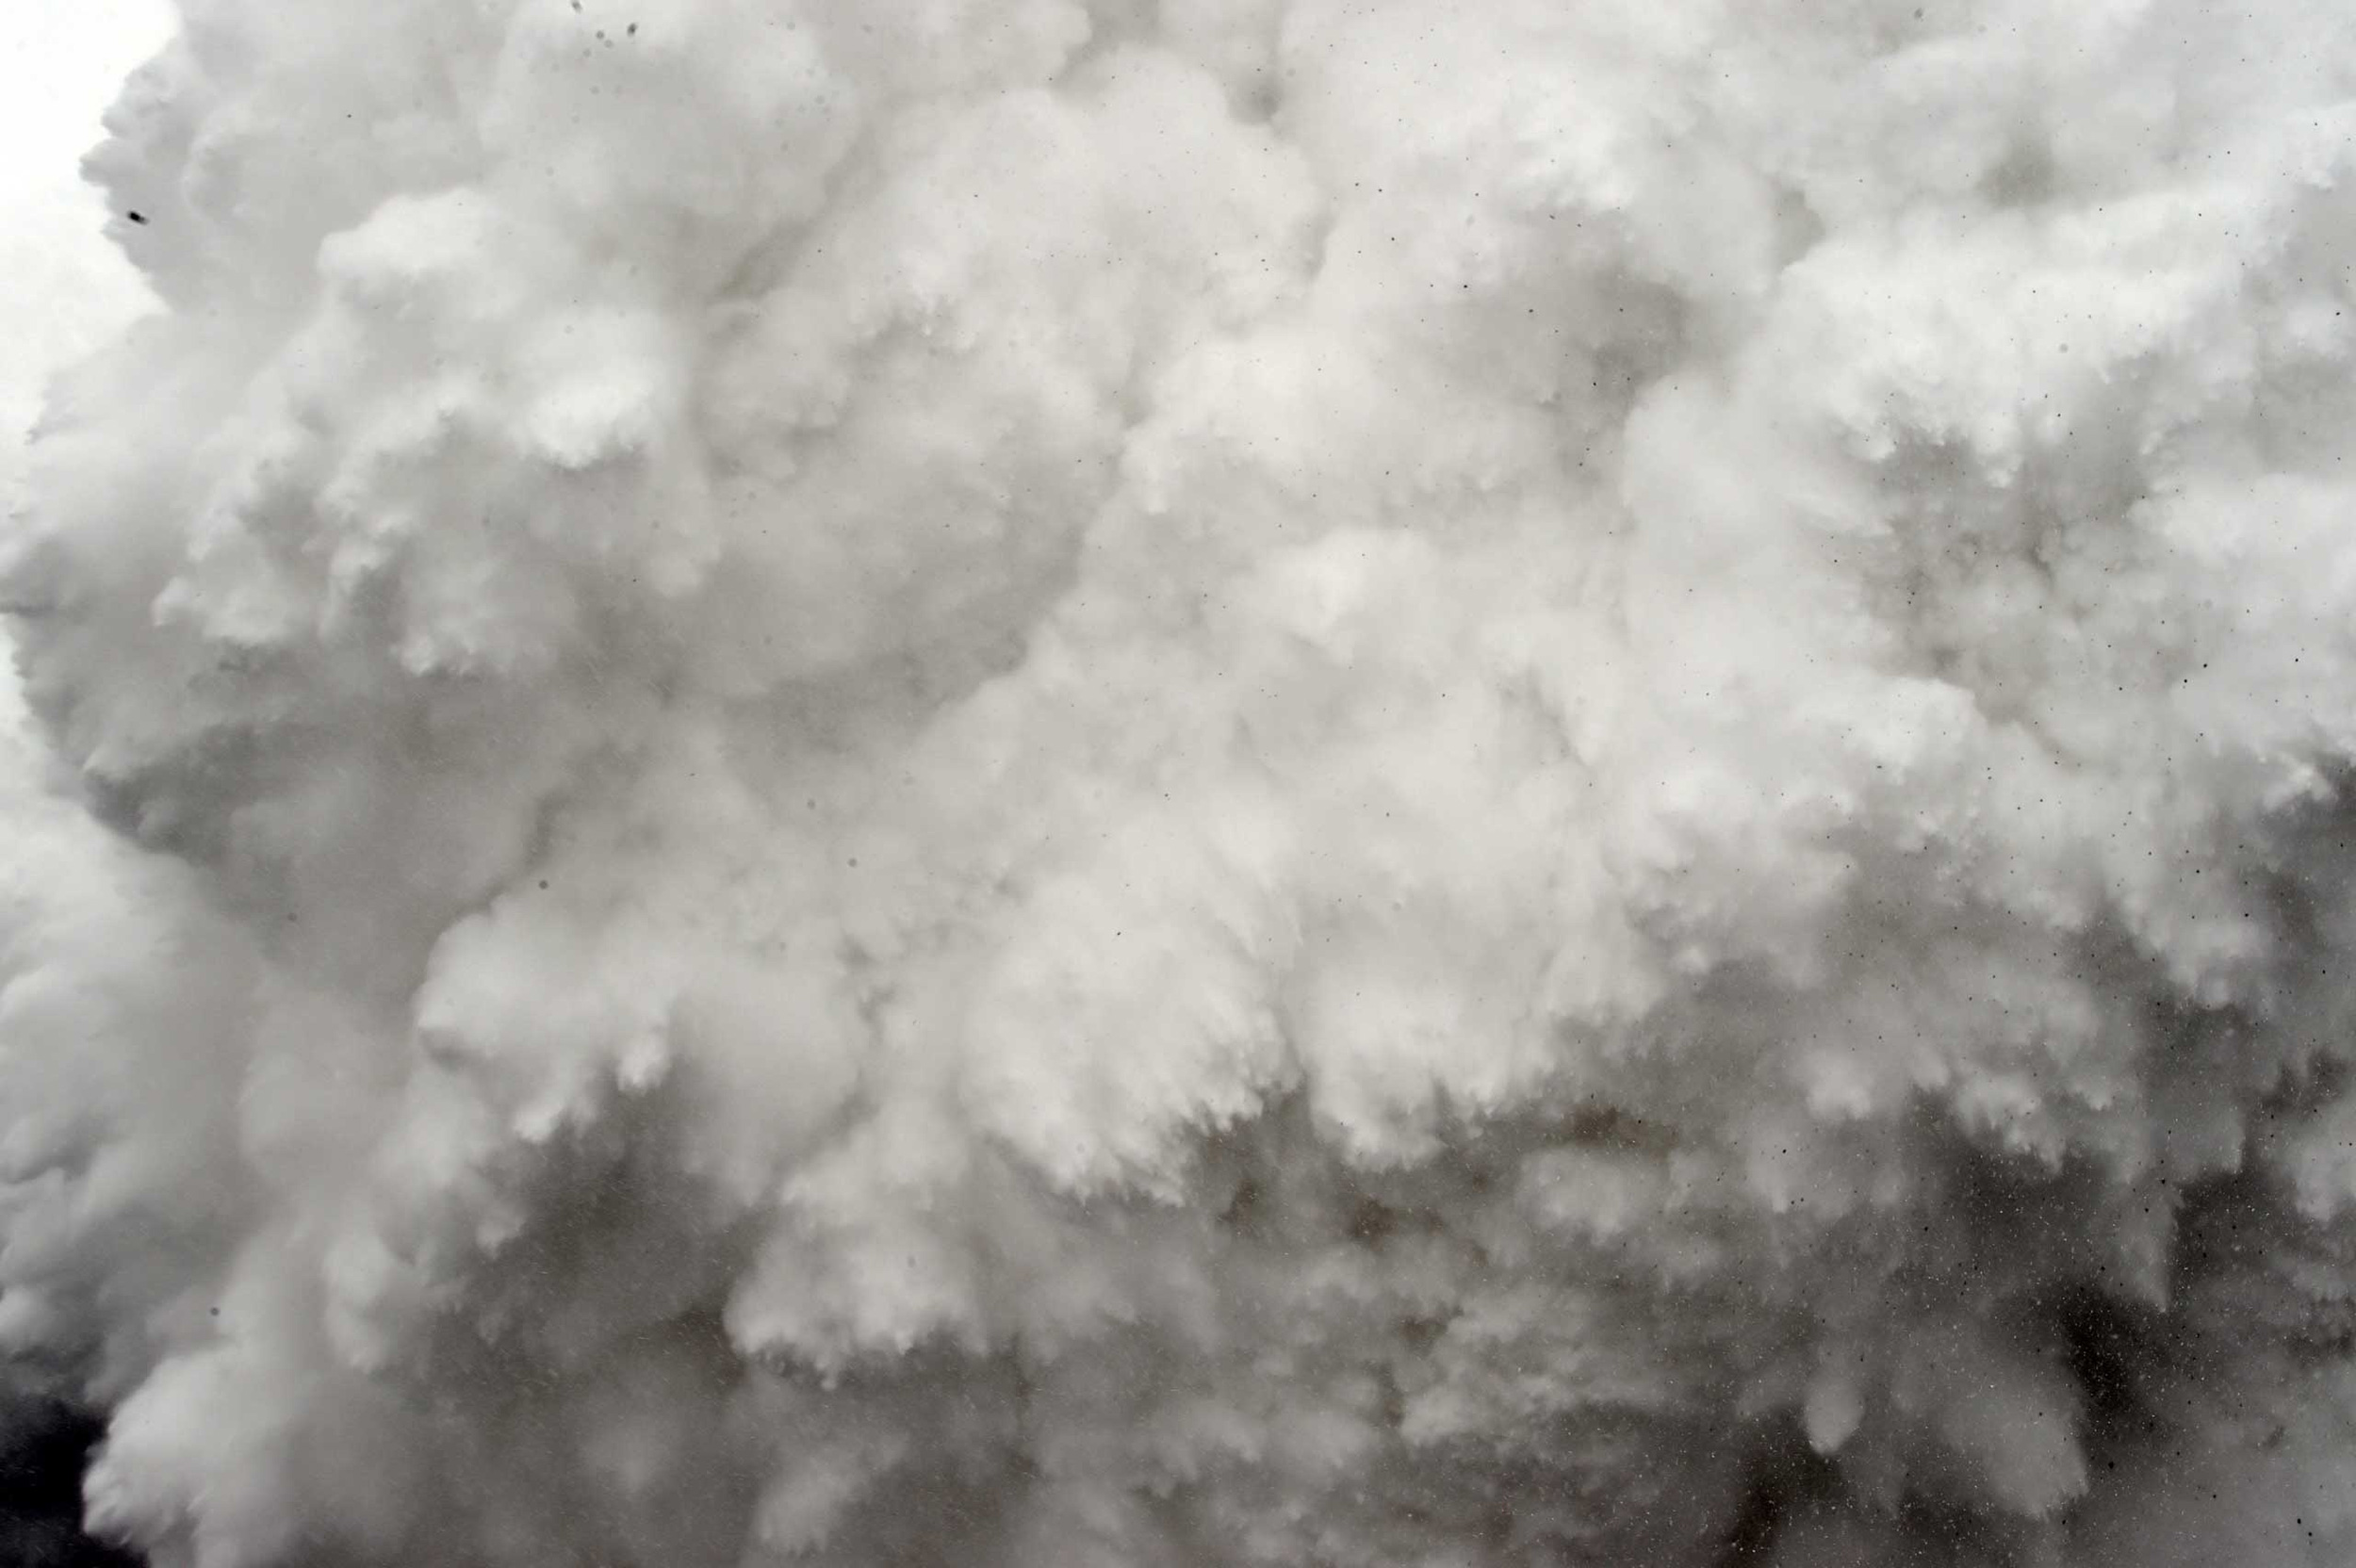 A cloud of snow and debris triggered by an earthquake flies towards Everest Base Camp, moments ahead of flattening part of the camp in the Himalayas on April 25, 2015.